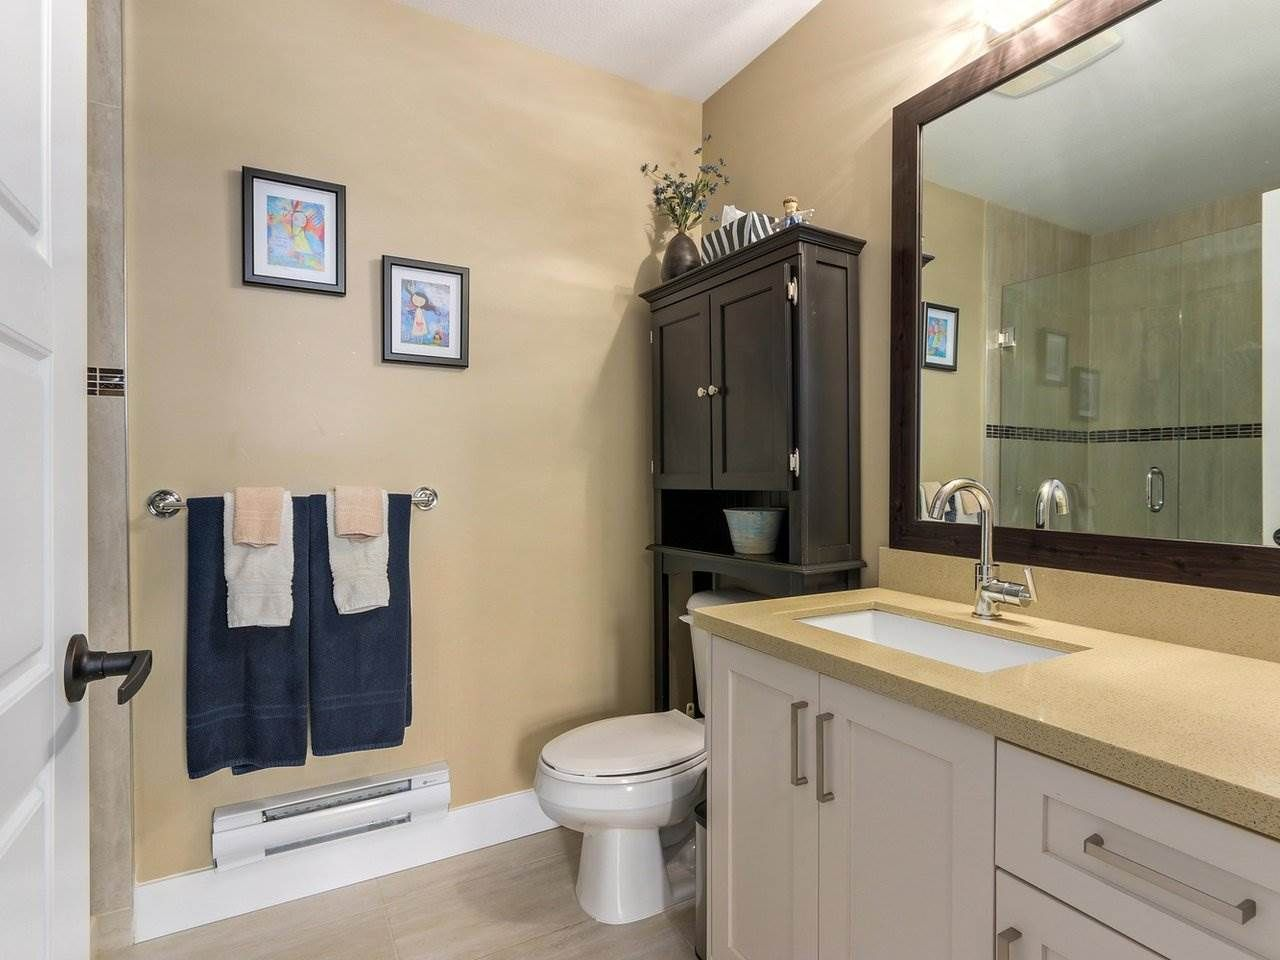 """Photo 11: Photos: 31 17171 2B Avenue in Surrey: Pacific Douglas Townhouse for sale in """"AUGUSTA TOWNHOUSES"""" (South Surrey White Rock)  : MLS®# R2280398"""